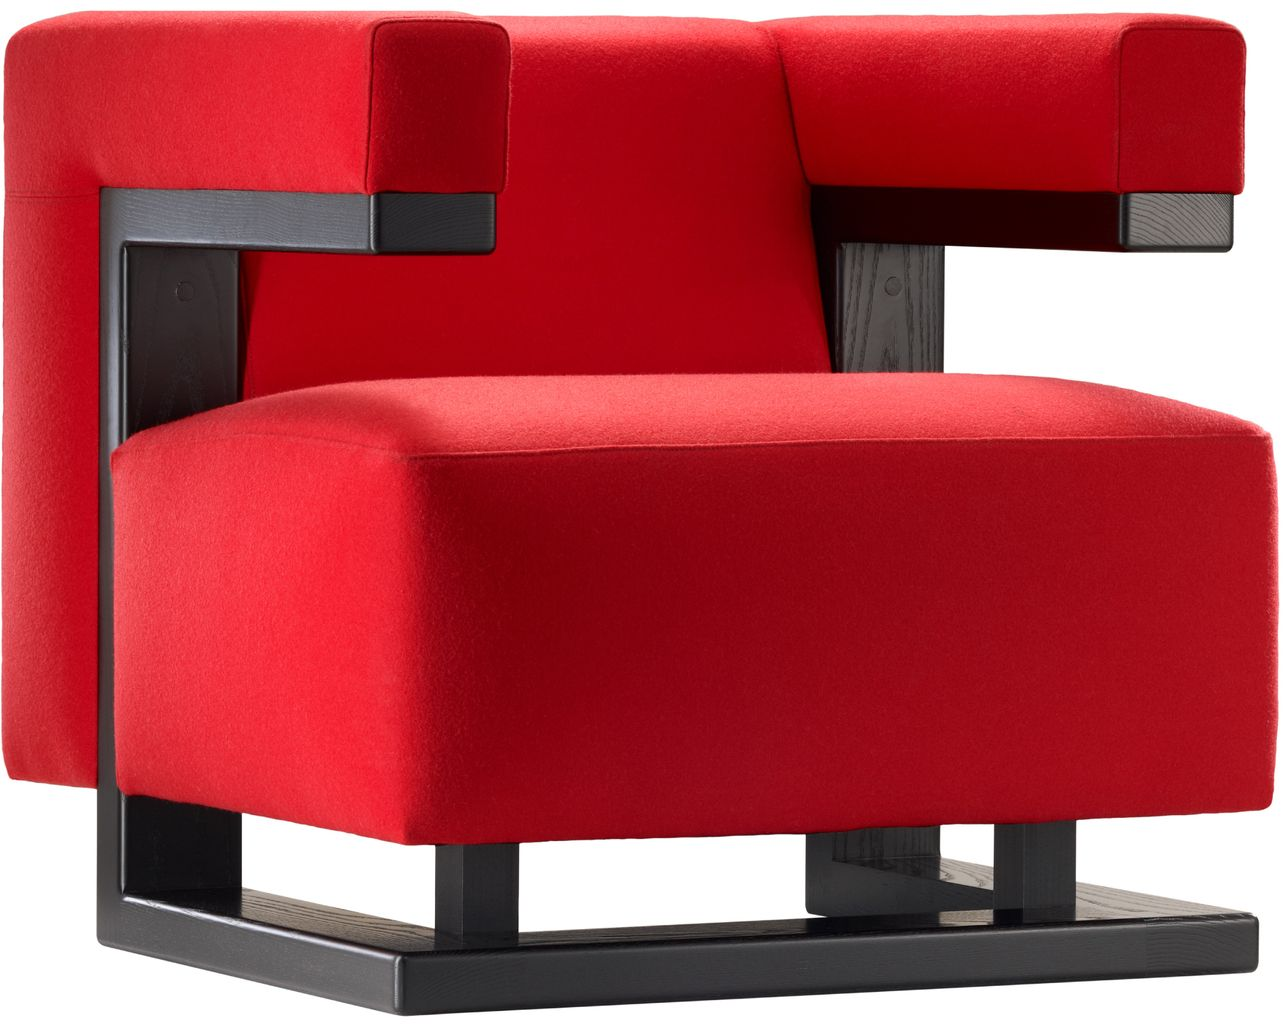 bauhaus sofas products most expensive sofa set in the world tecta f51 kavallerietuch rot esche massiv schwarz sessel